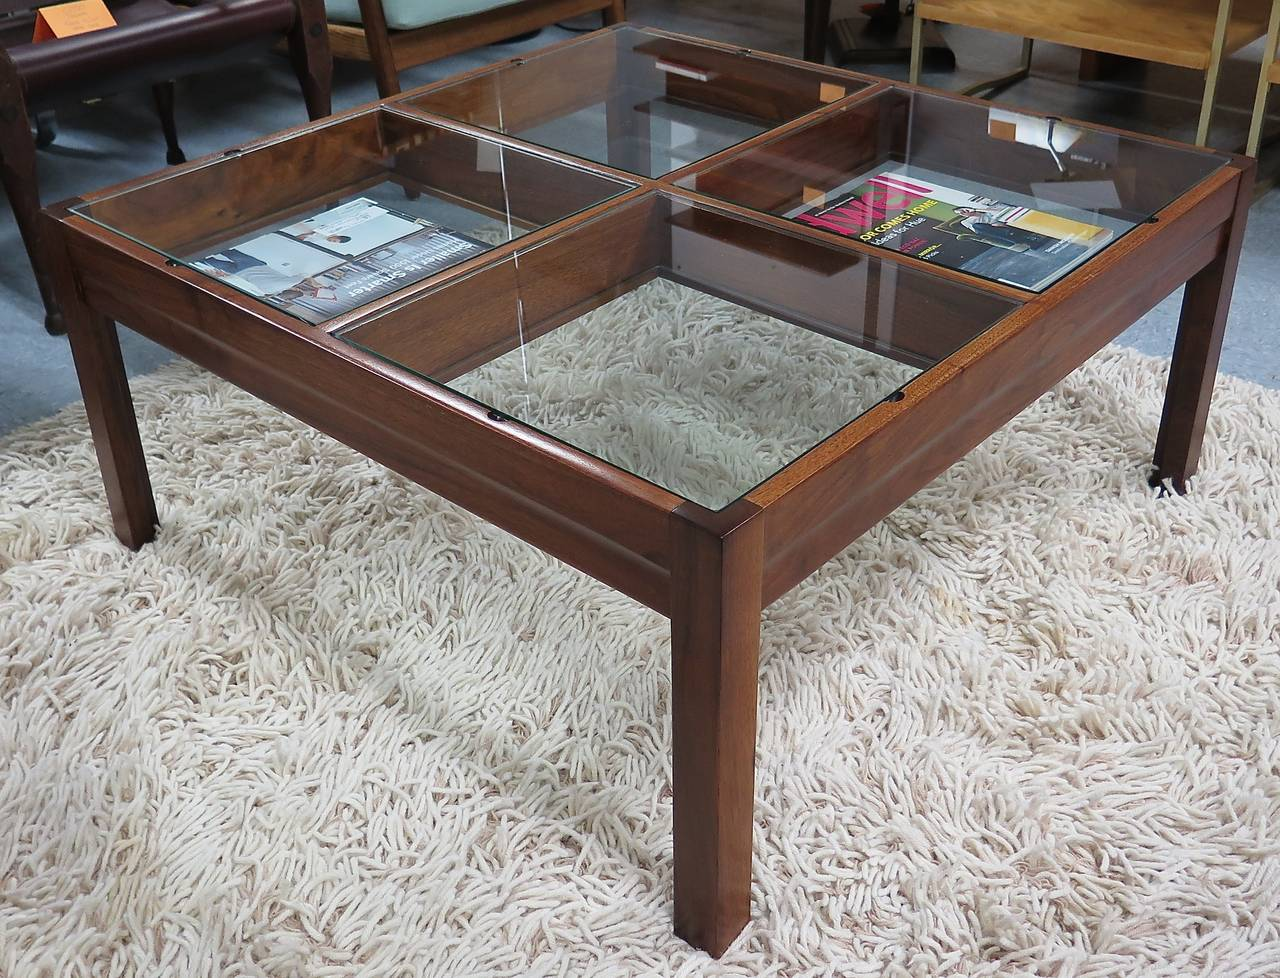 The 20 Inspiring Display Coffee Table Homes Alternative 3379